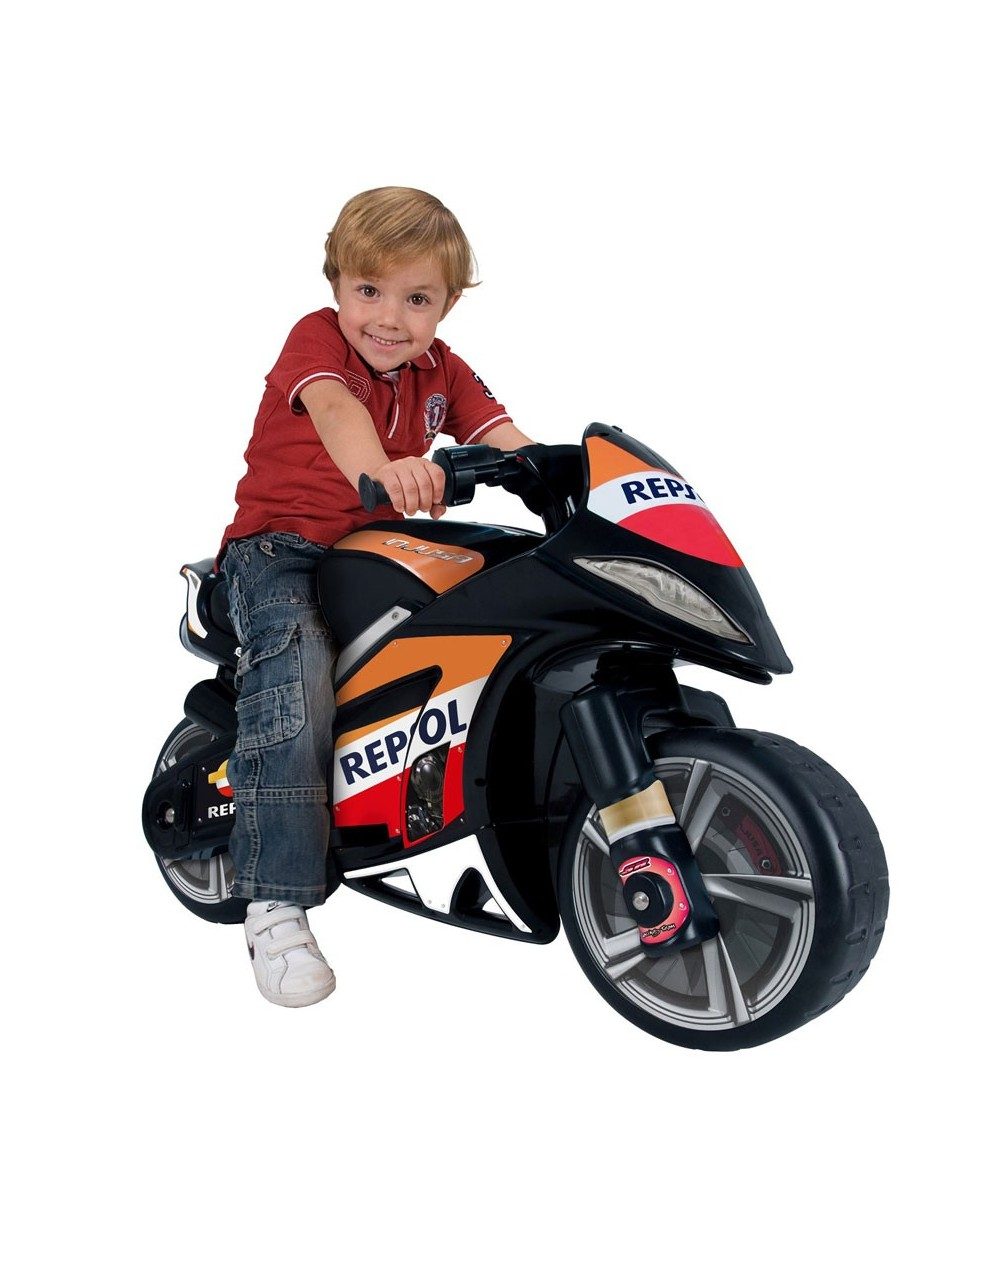 elektrische motorrad repsol. Black Bedroom Furniture Sets. Home Design Ideas